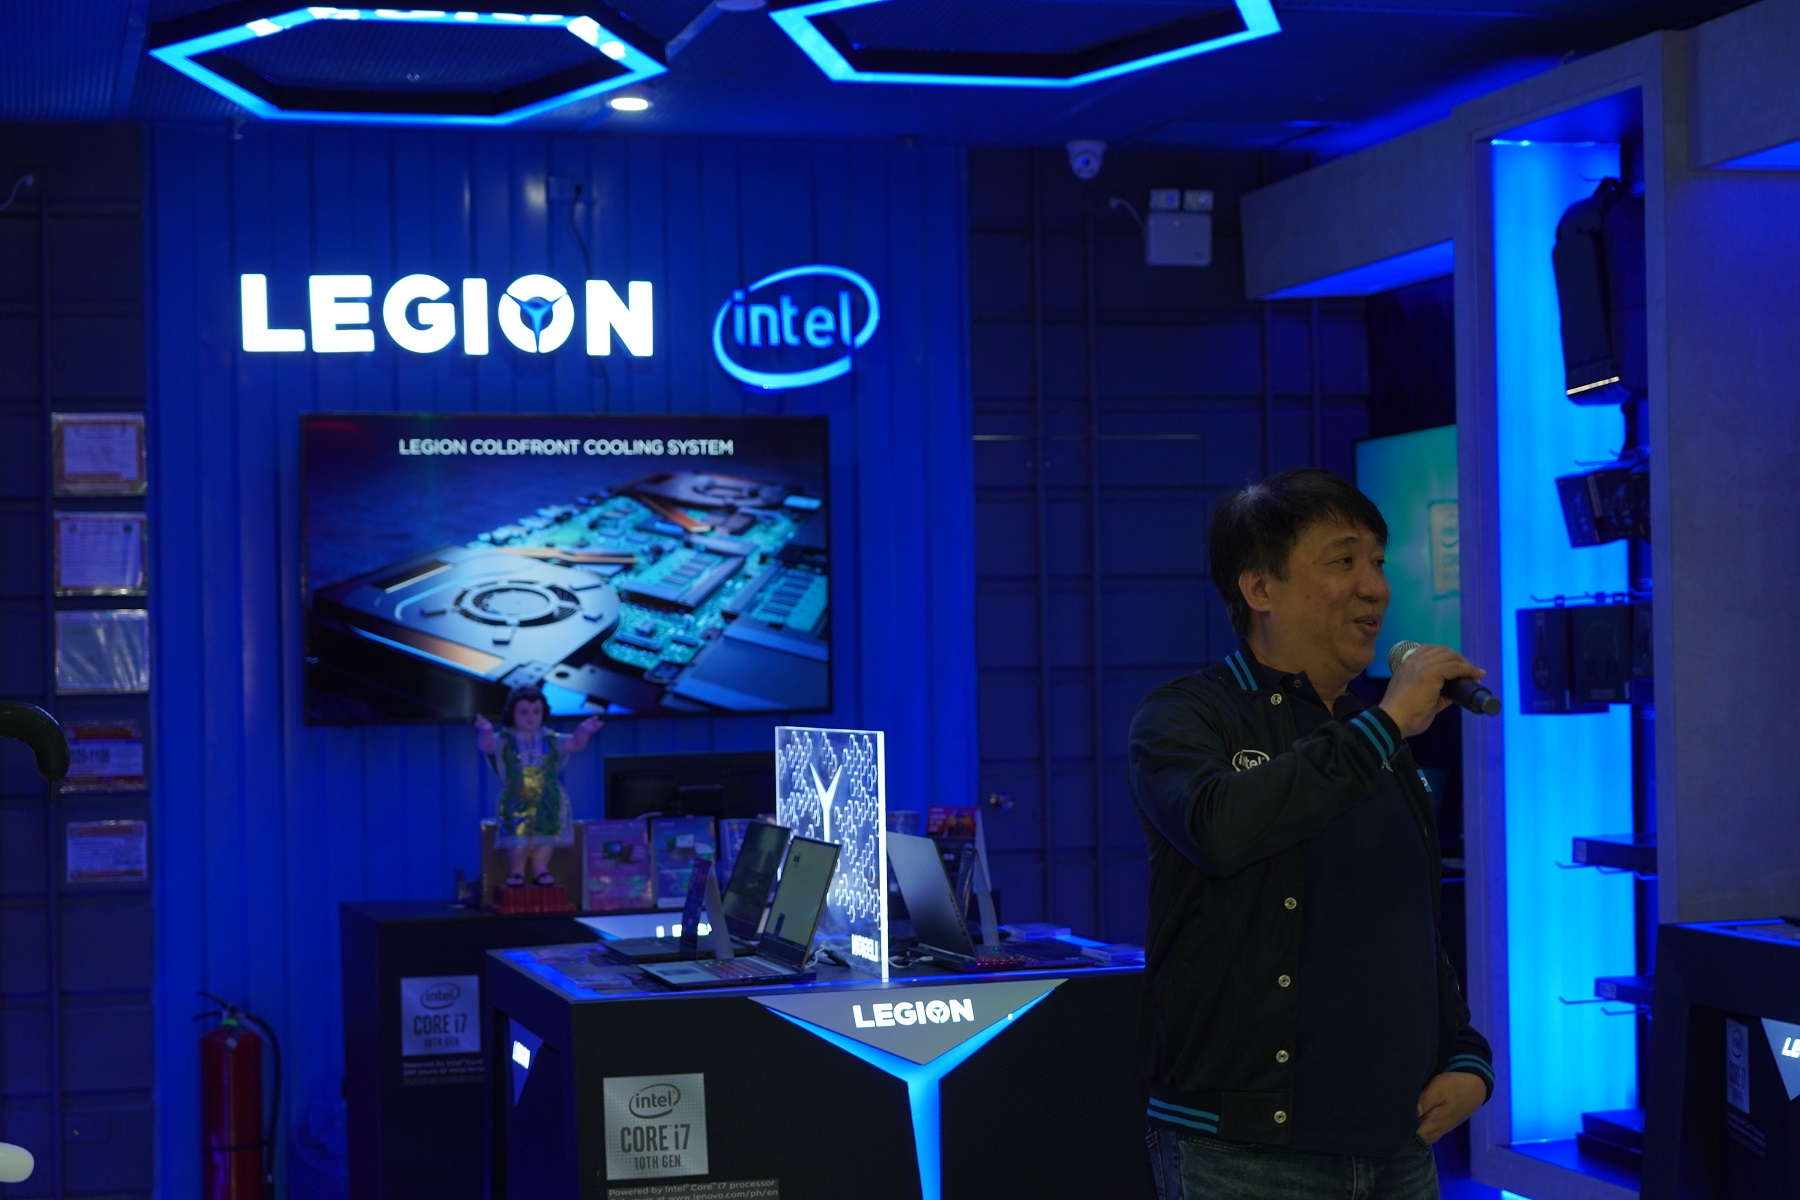 lenovo-legion-store-at-sm-city-clark-now-open